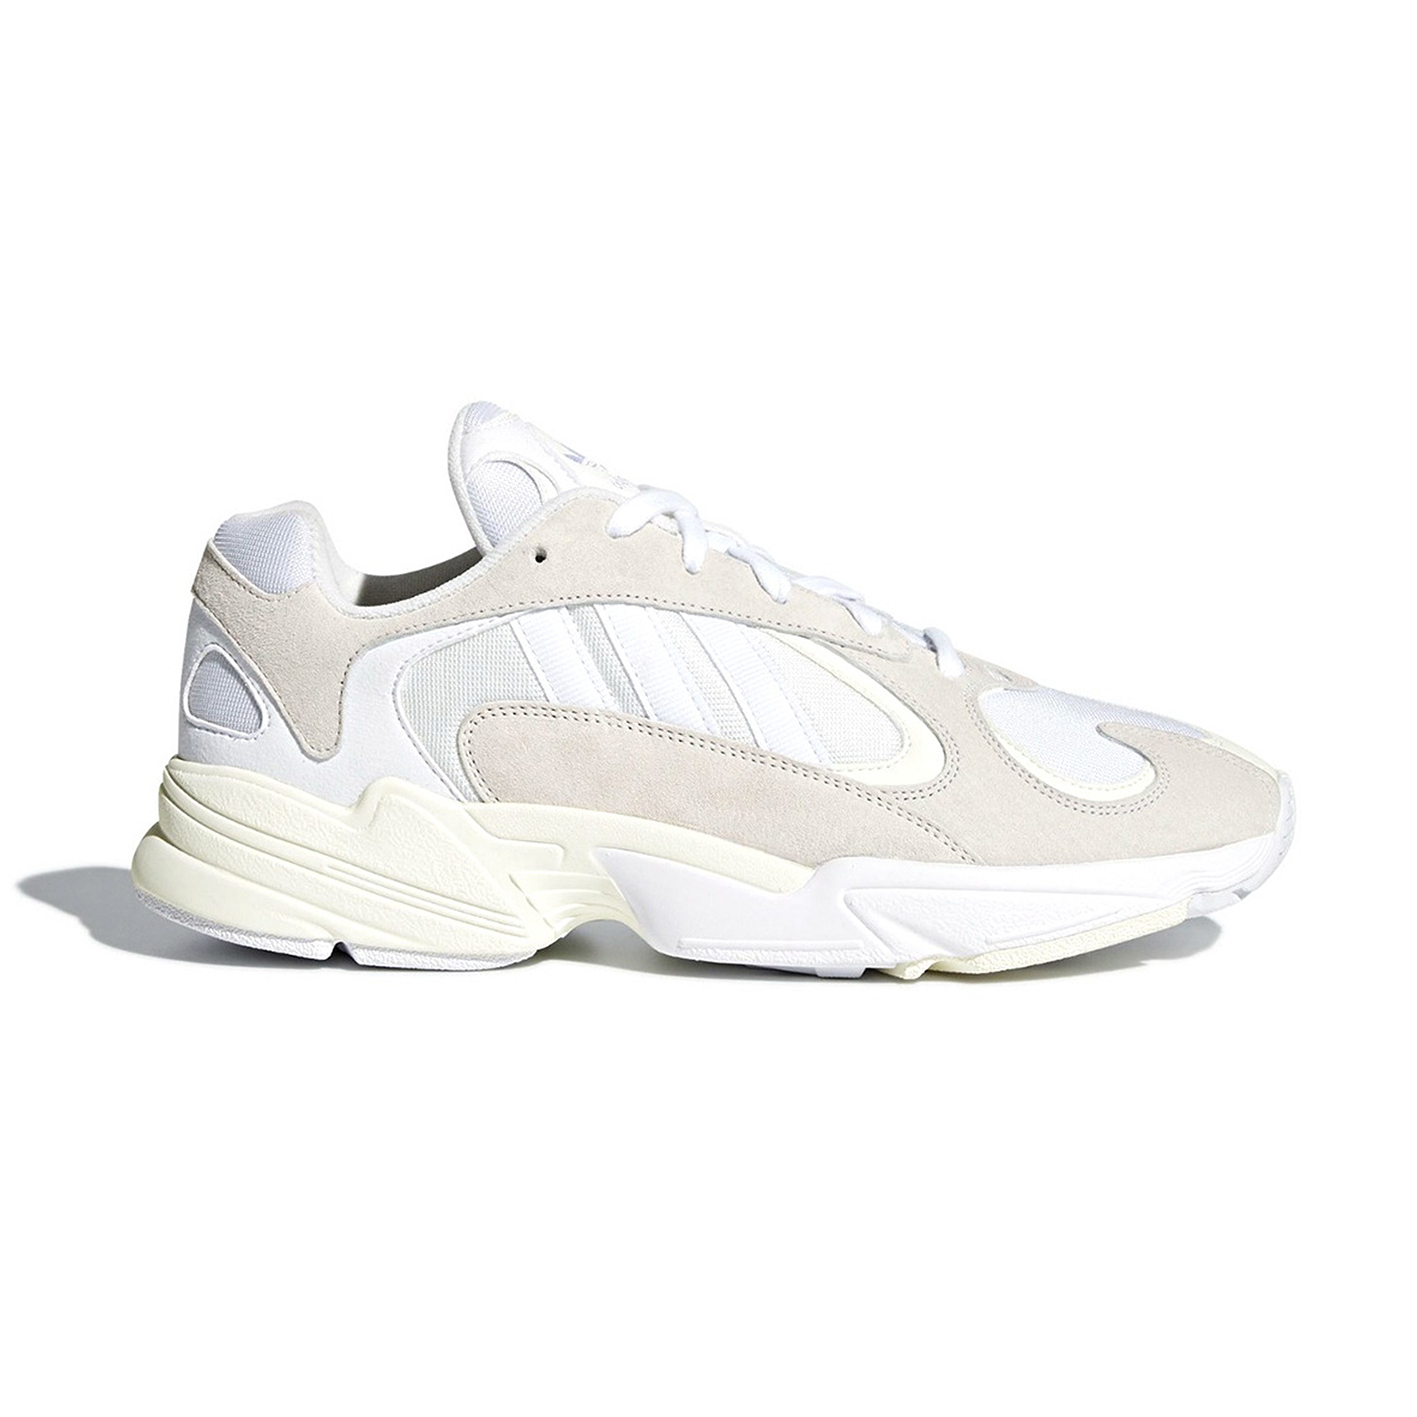 Adidas Yung-1 all white